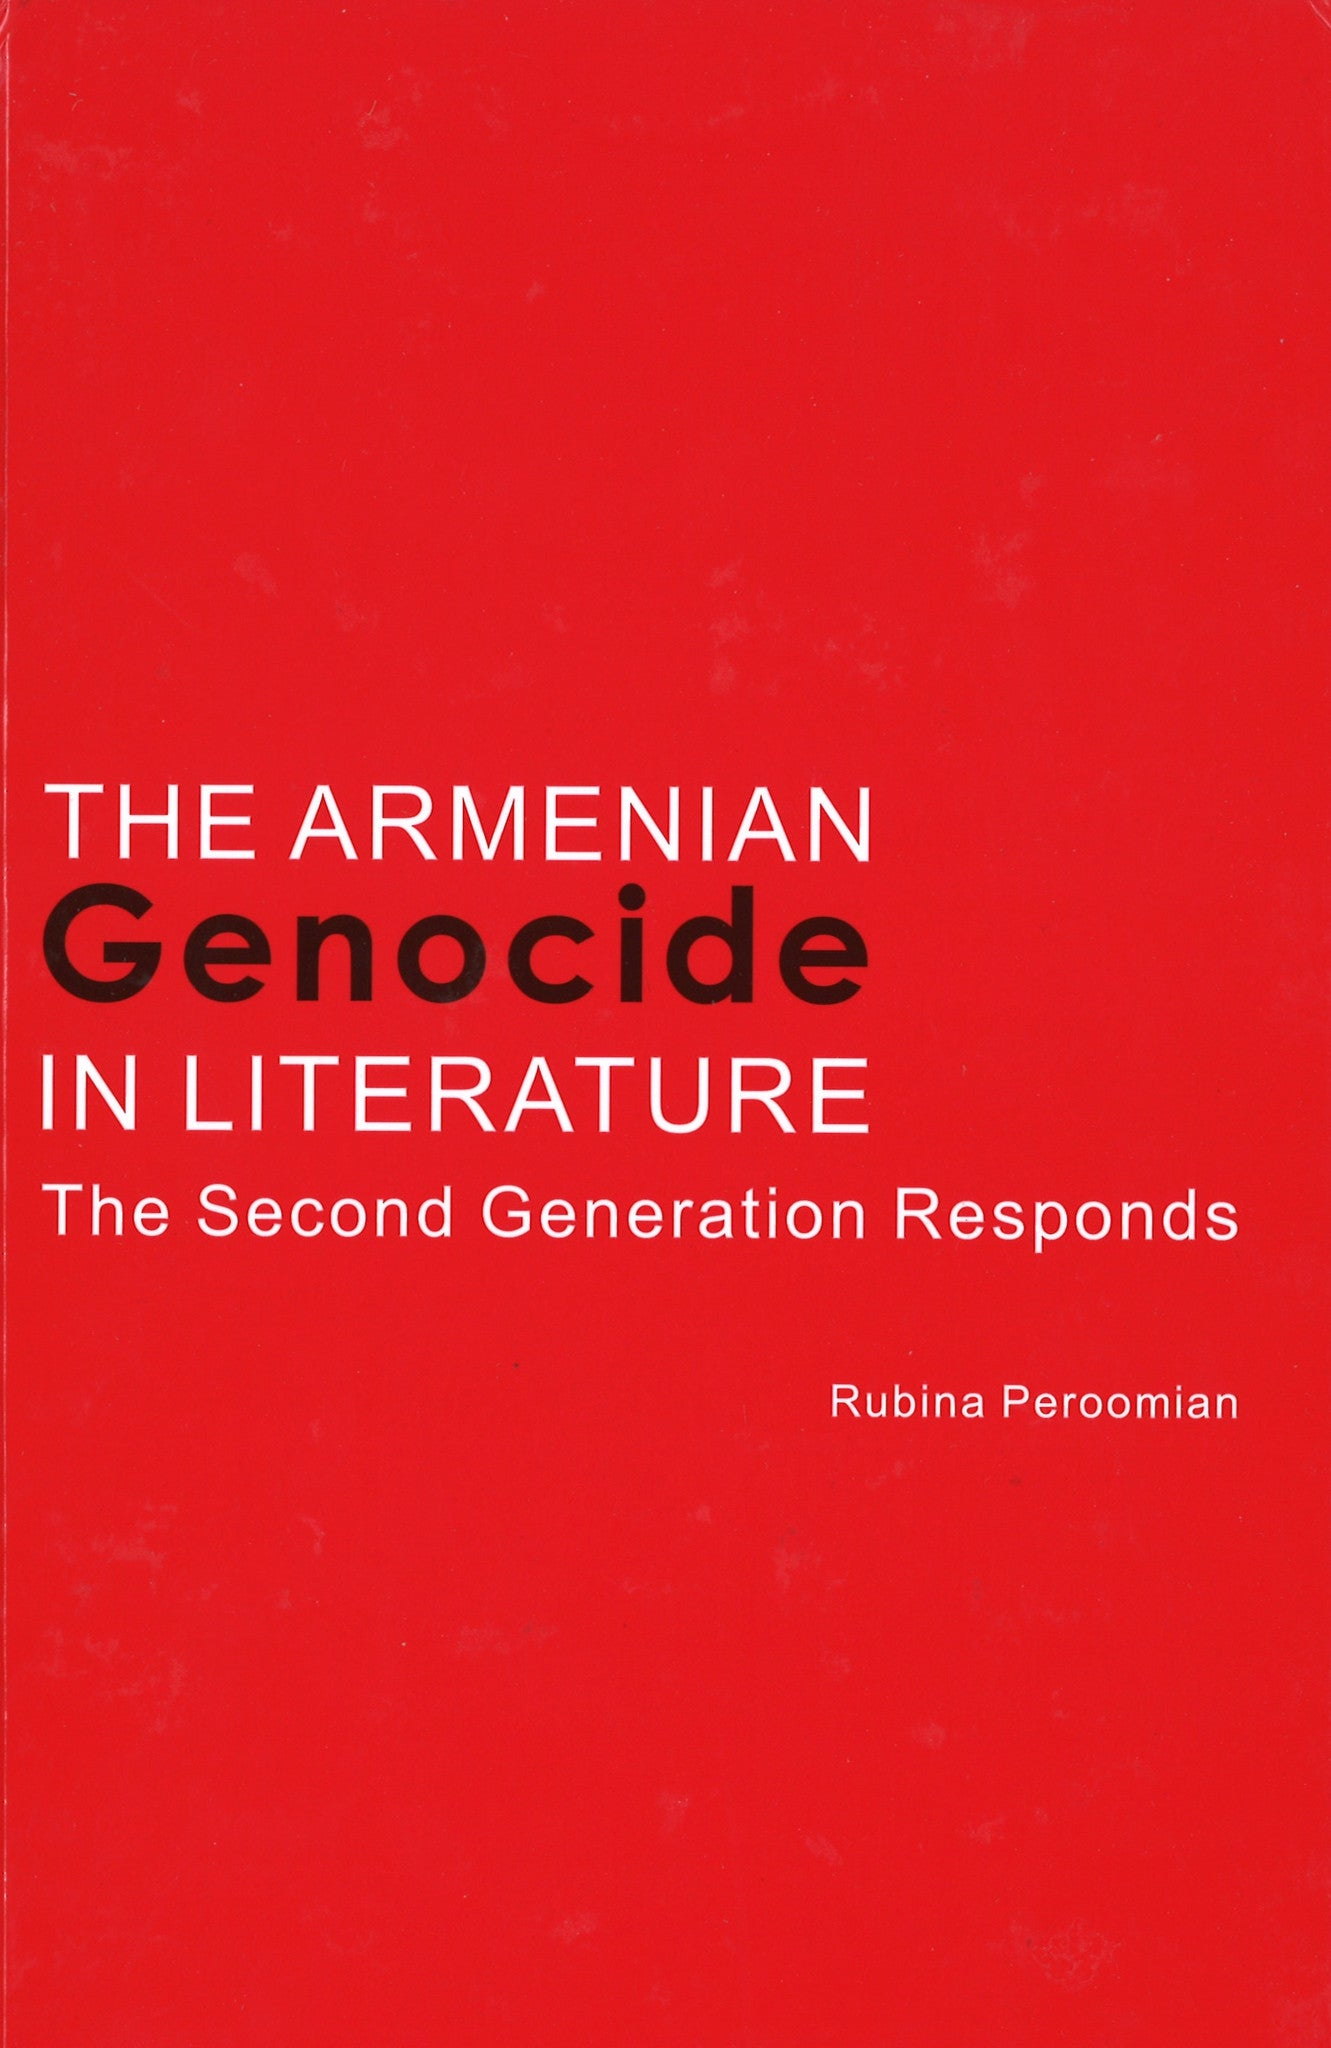 ARMENIAN GENOCIDE IN LITERATURE: The Second Generation Responds